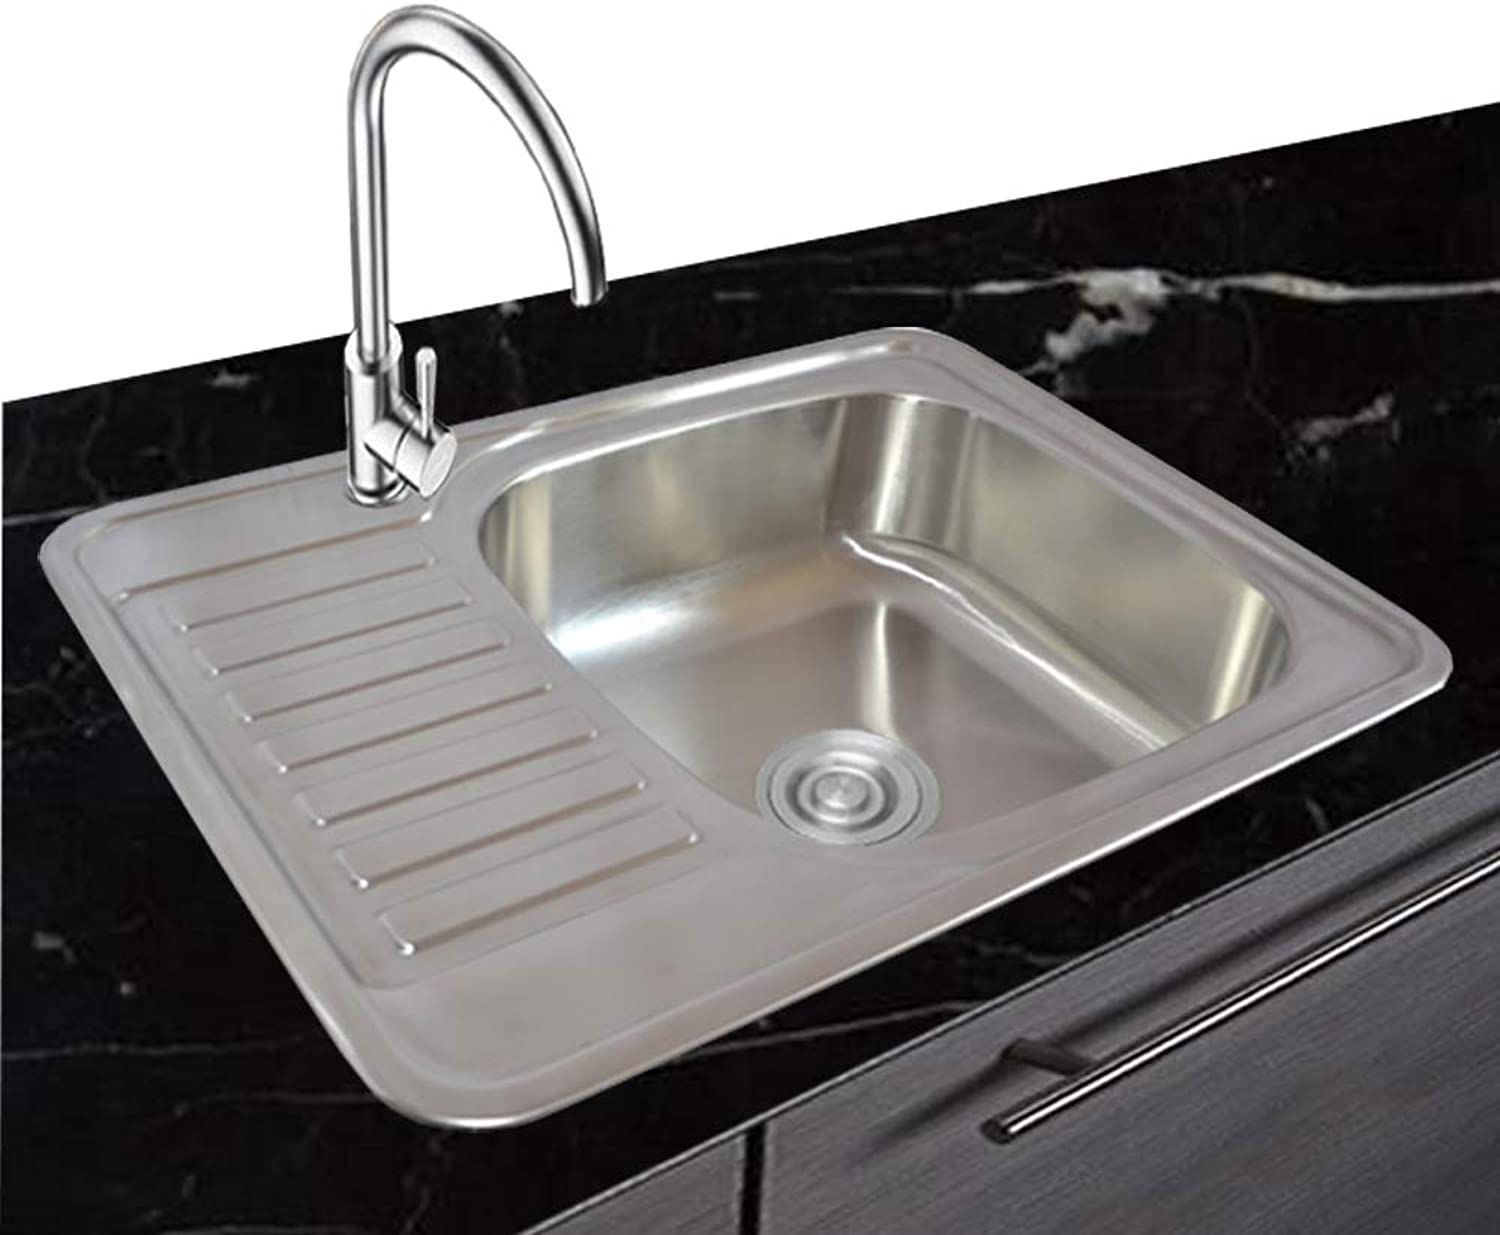 1 x Stainless Steel 304 Square, 1 Basin with Shelf and Drainage Panel, 65 cm, 50 cm B.